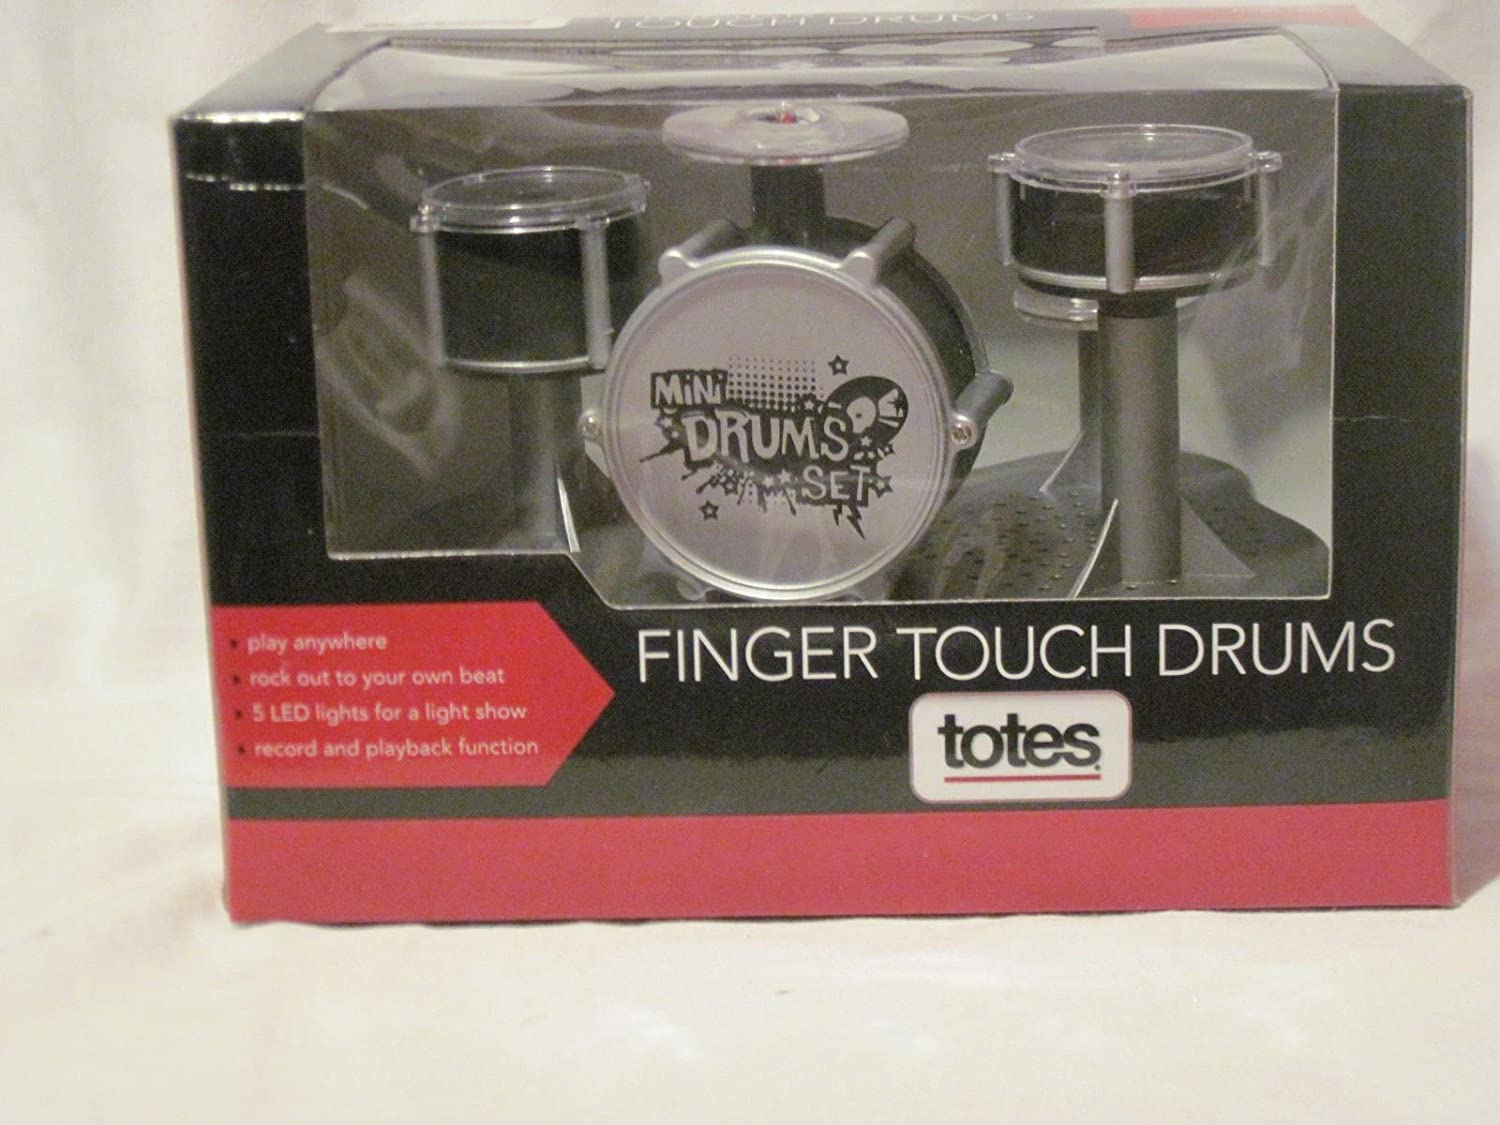 totes Finger Touch Drums - Rockin Beats at Your Fingertips - Play Anywhere - Record and Playback Function -